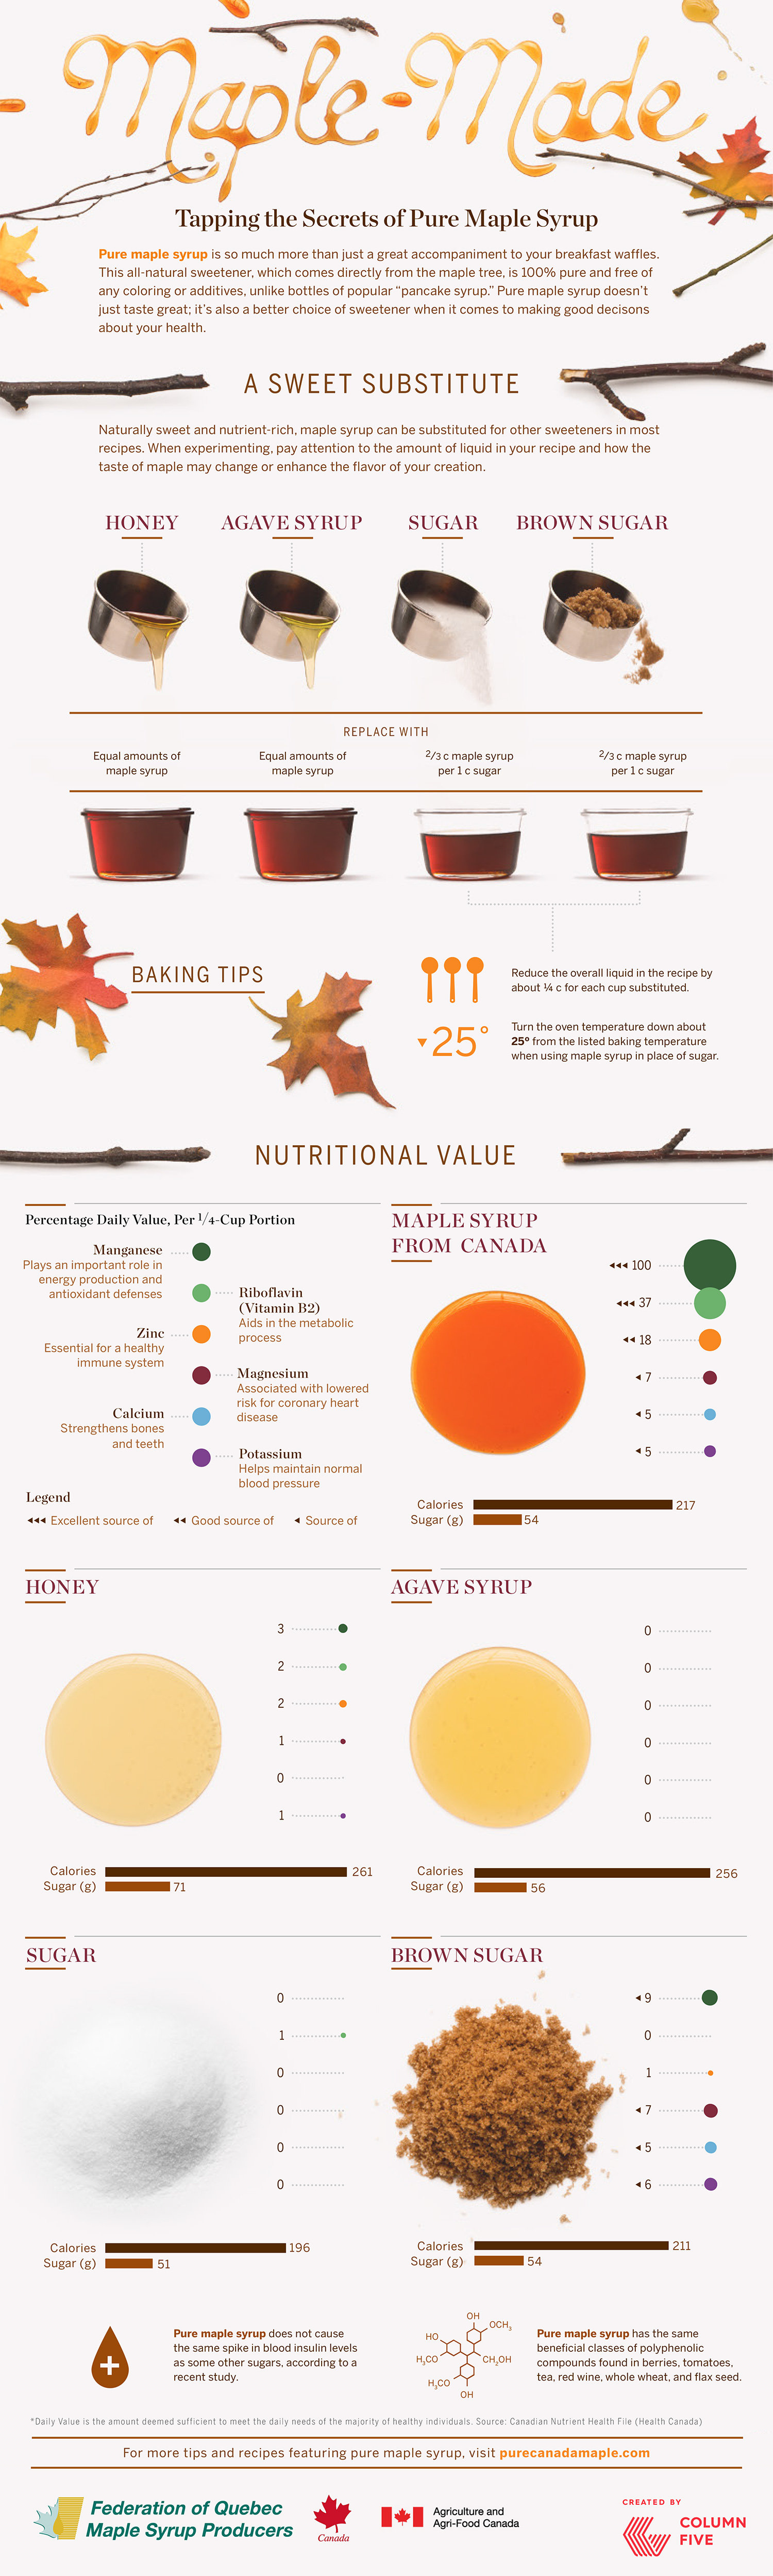 Maple-Made: Tapping the Secrets of Pure Maple Syrup